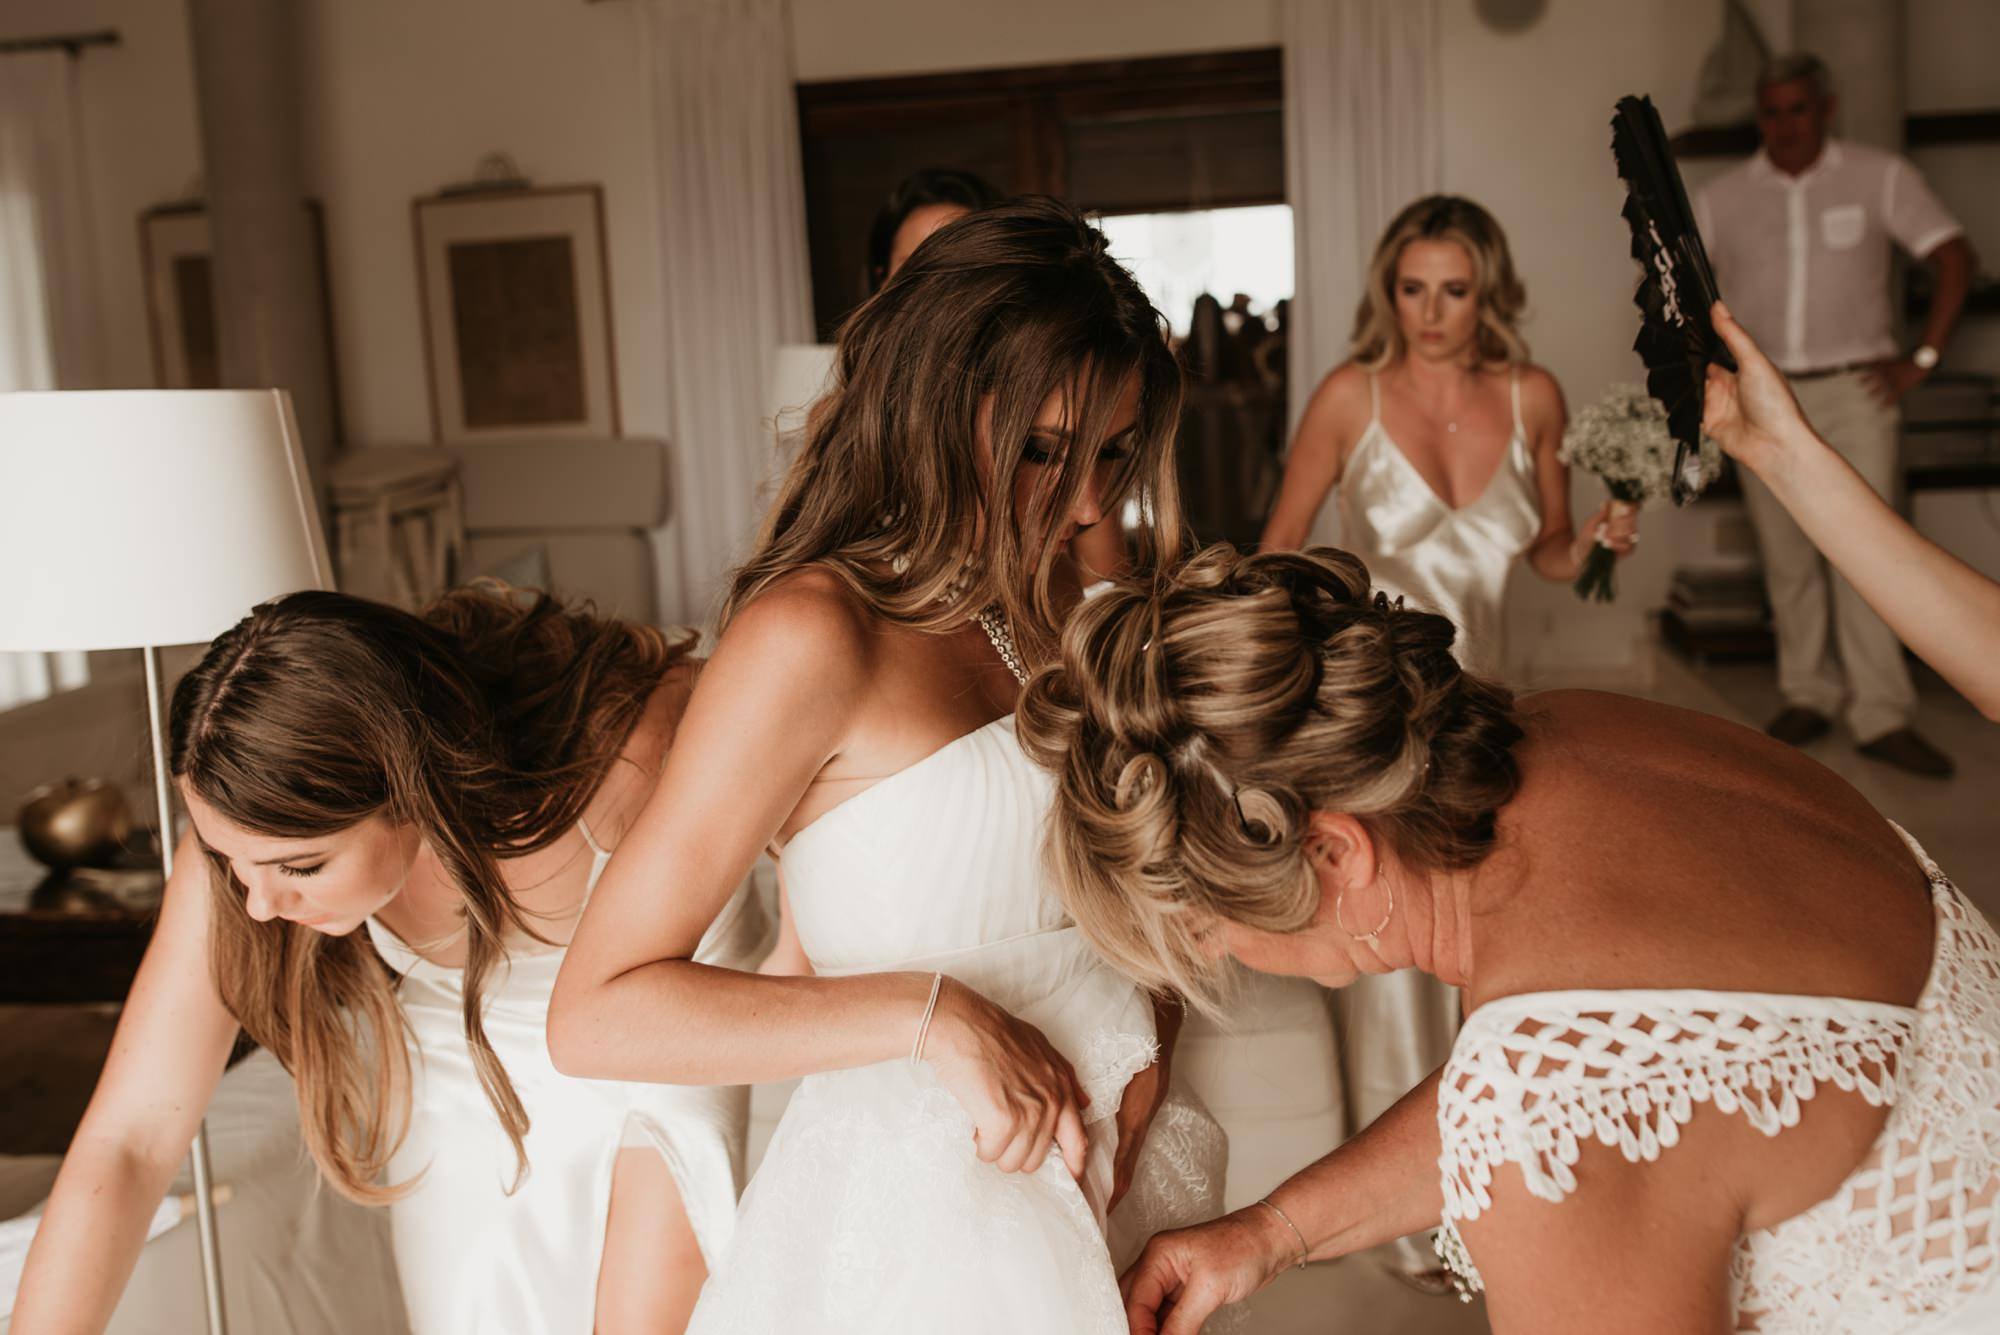 natural wedding photo destination ibiza 0032 1